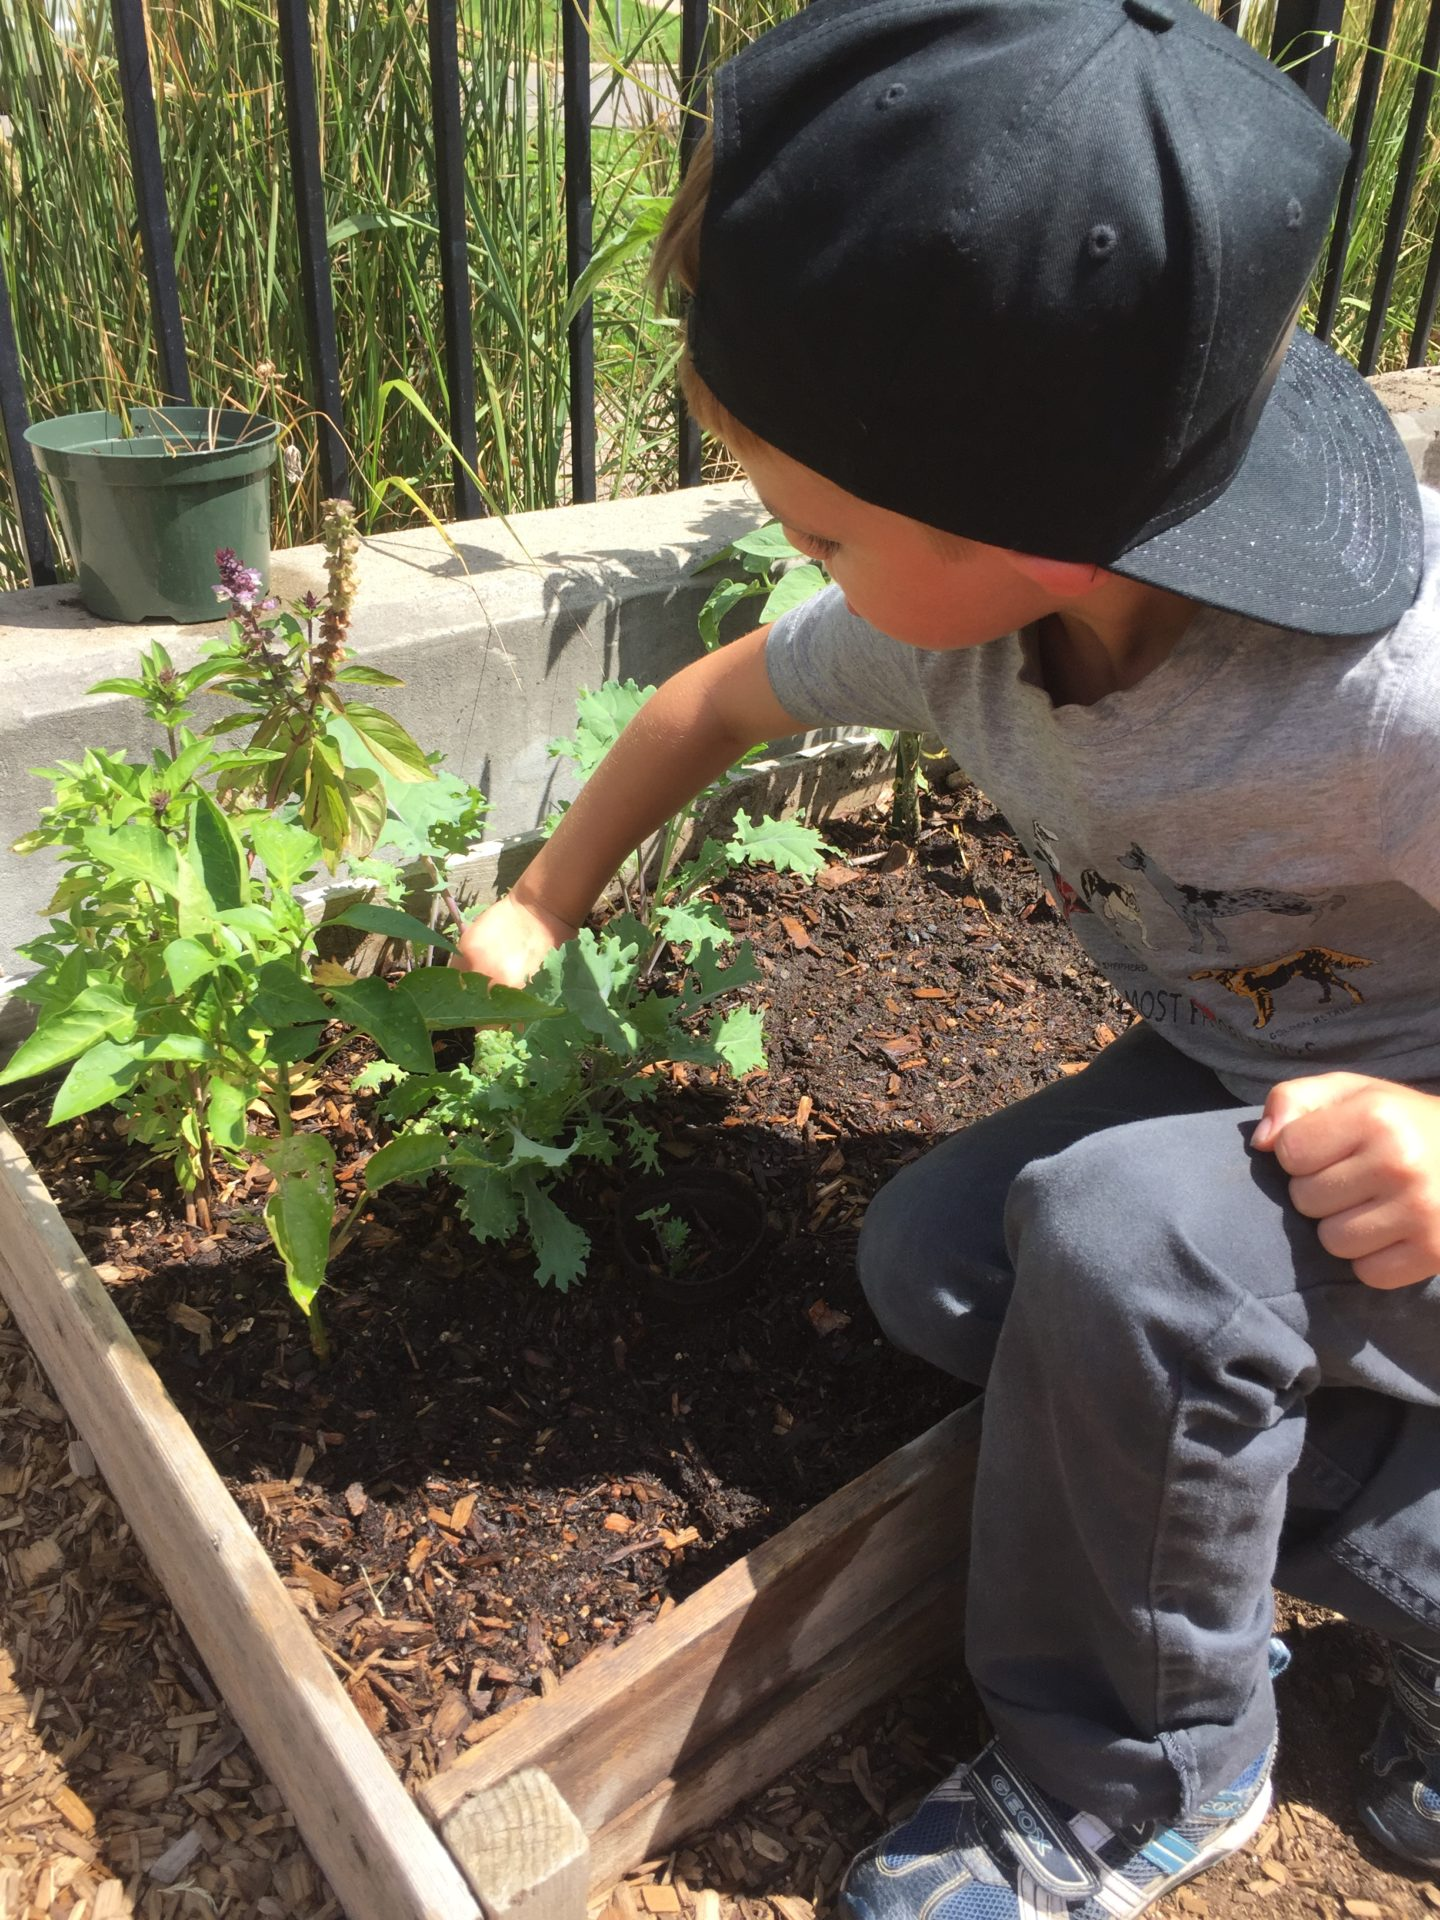 Child looking at plant in garden